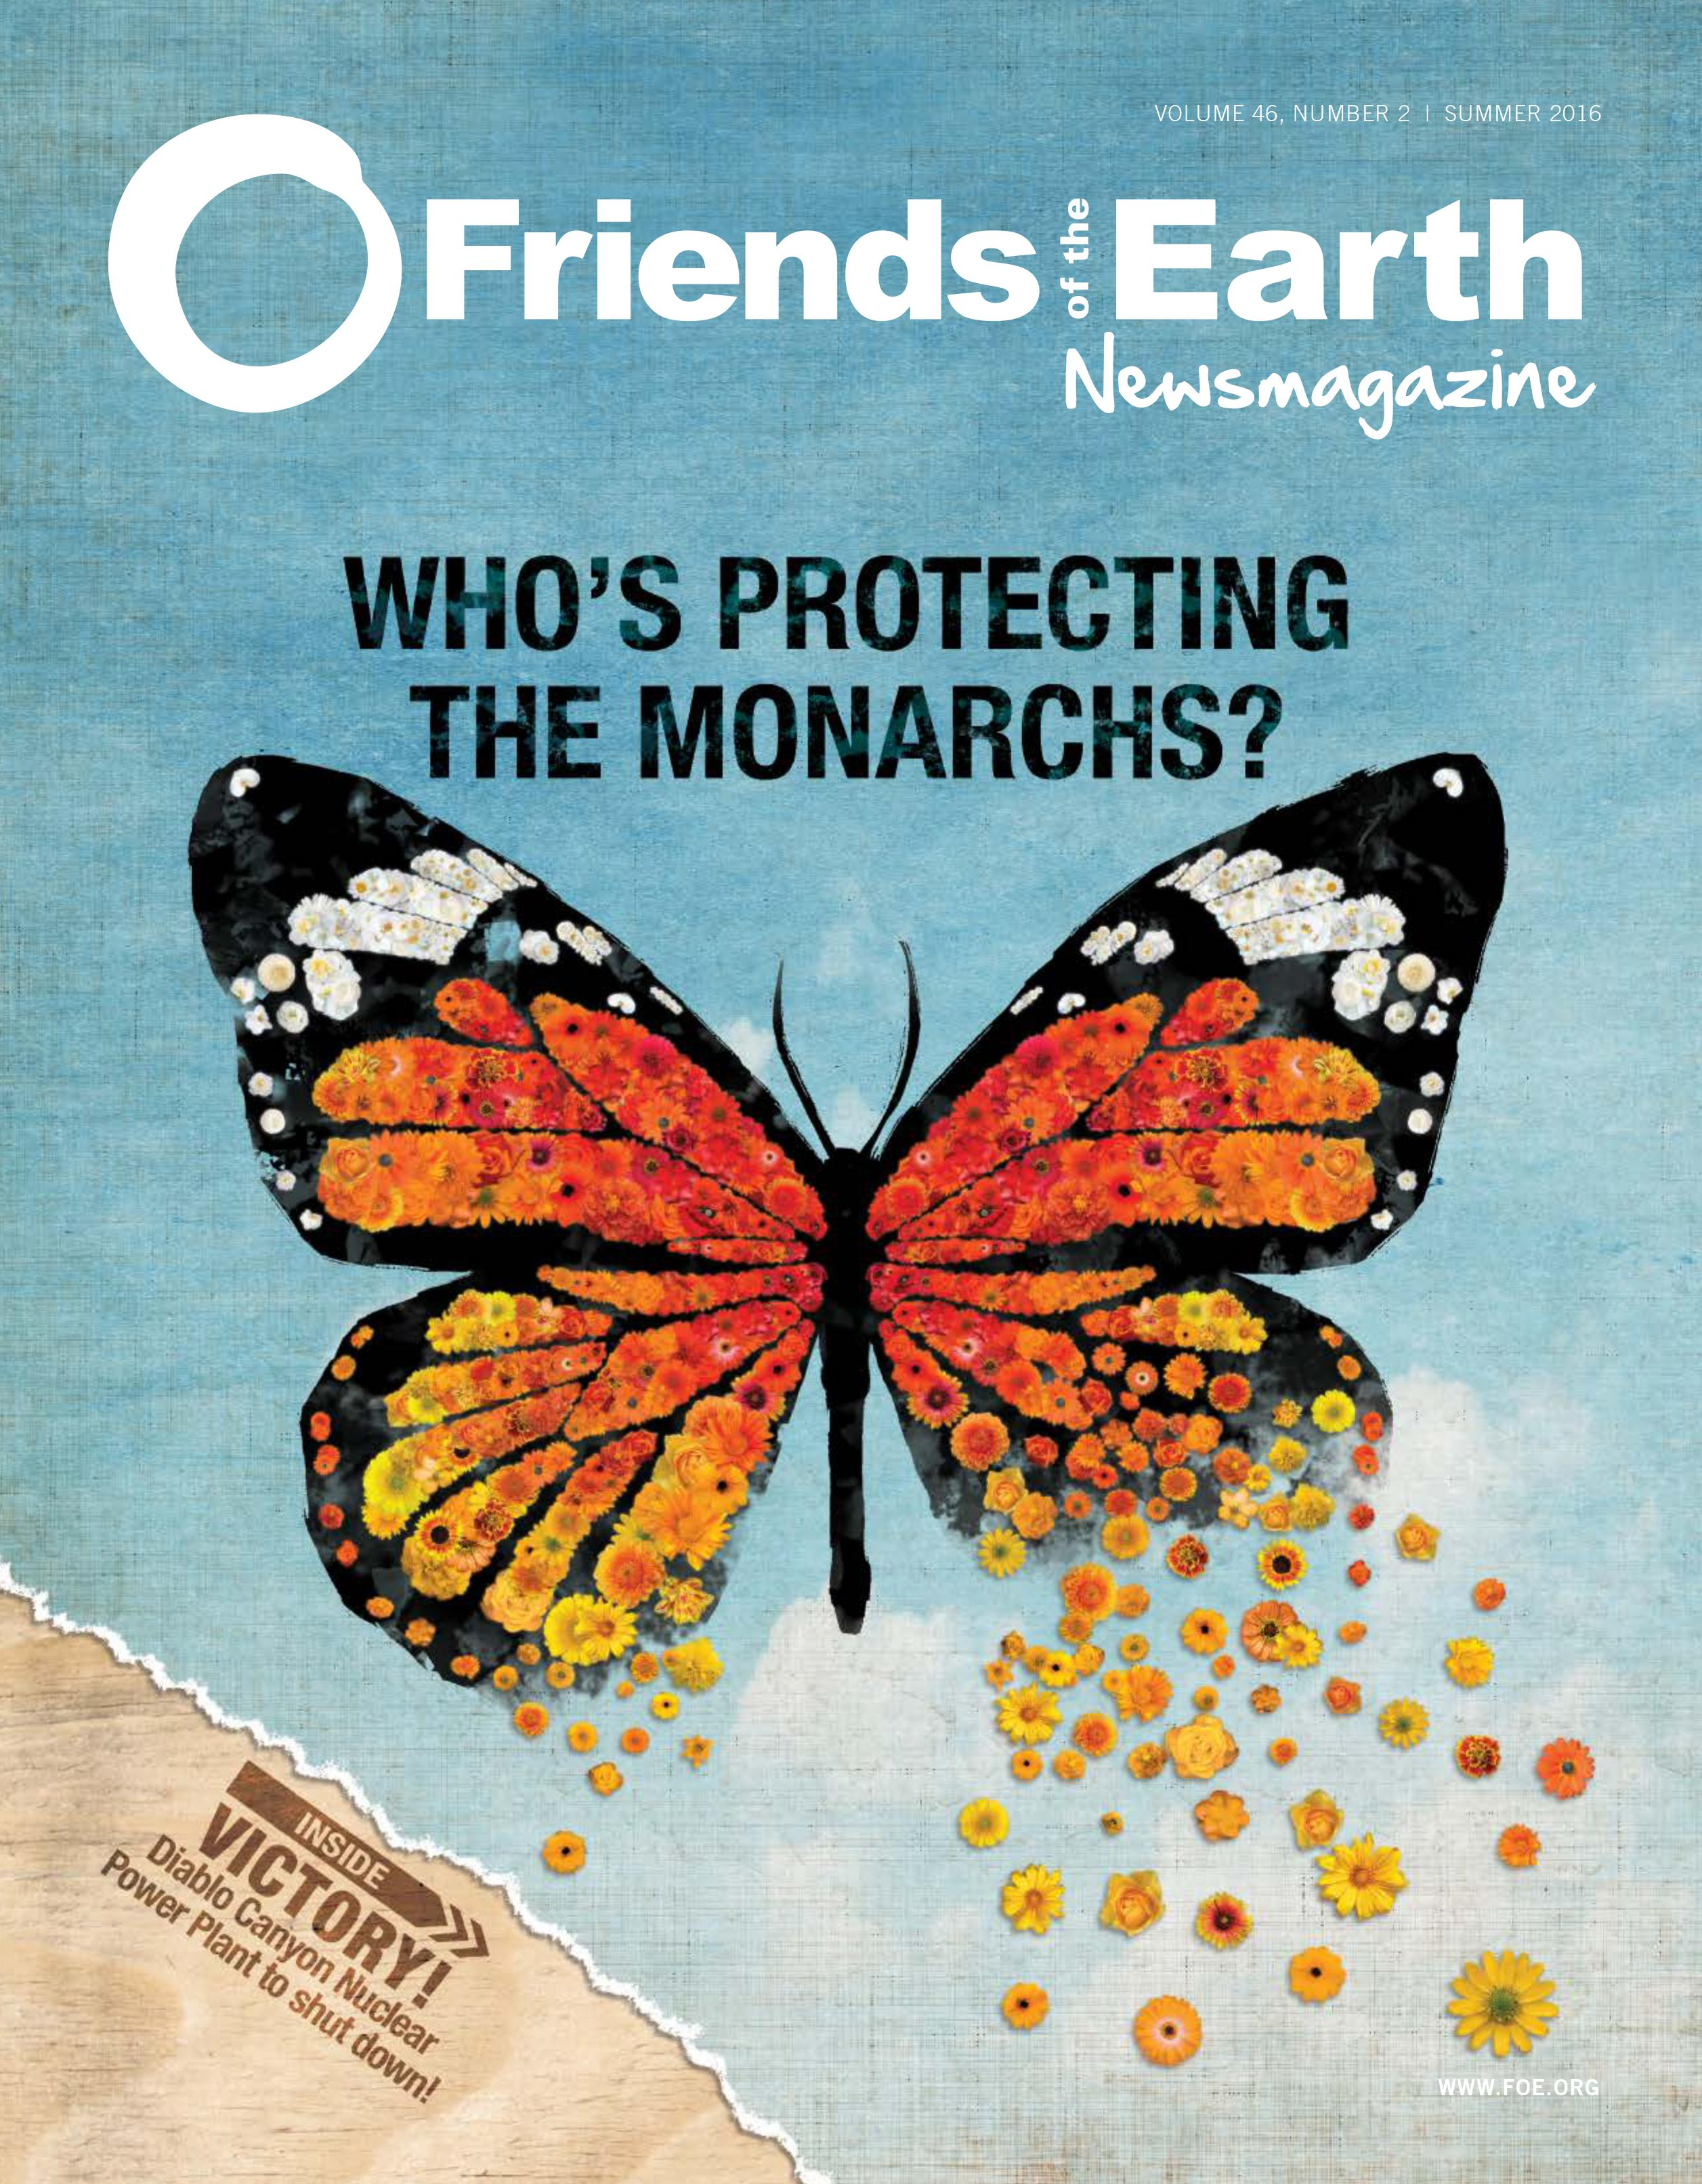 Summer 2016 Newsmagazine: Who's protecting the monarchs?